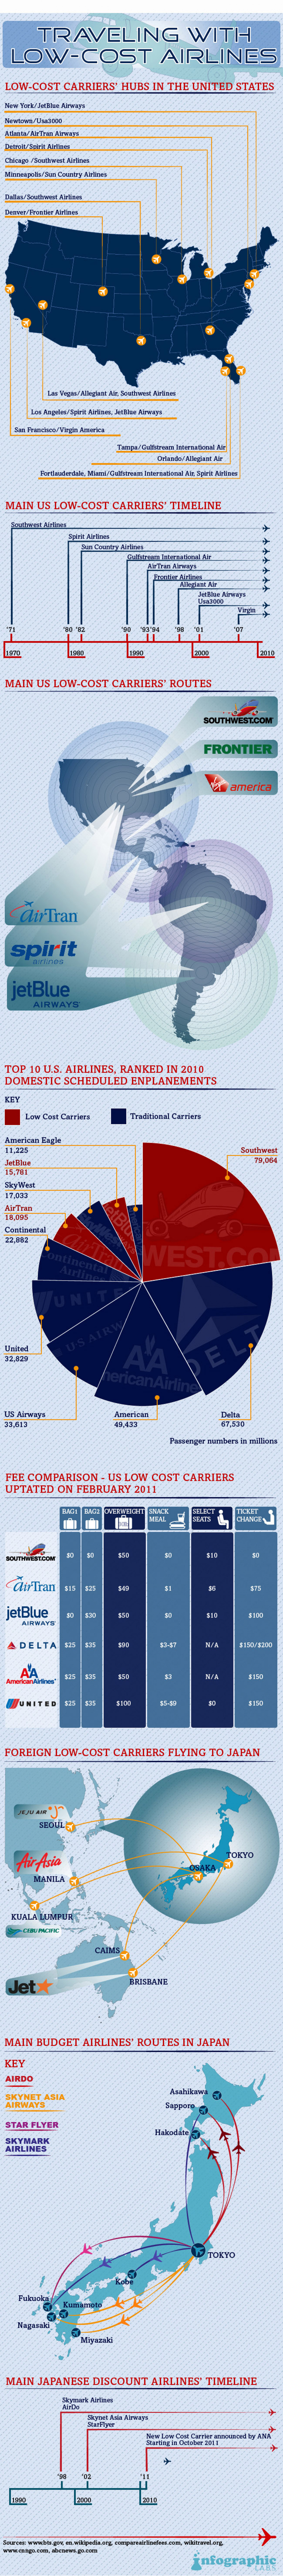 Budget Airlines Infographic